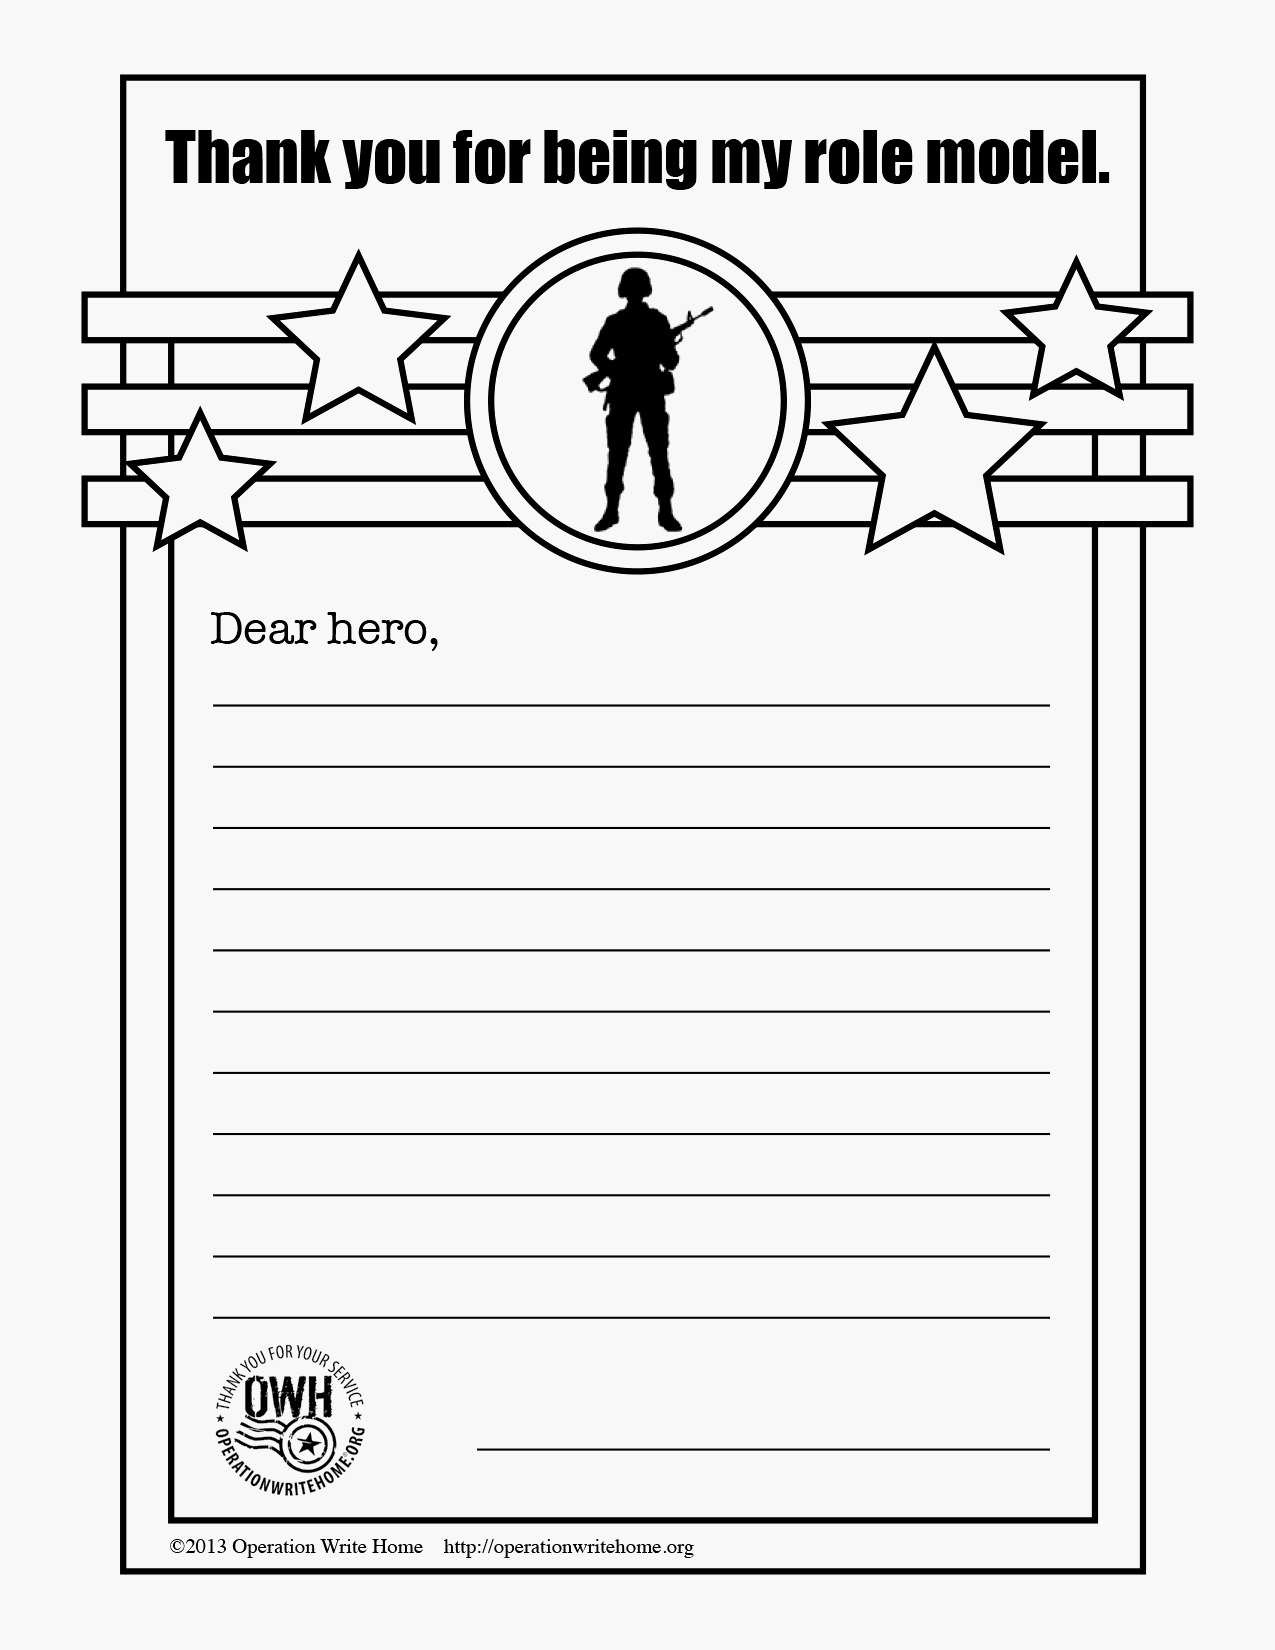 Free Printable Military Greeting Cards Christmas Card For Deployed - Free Printable Military Greeting Cards